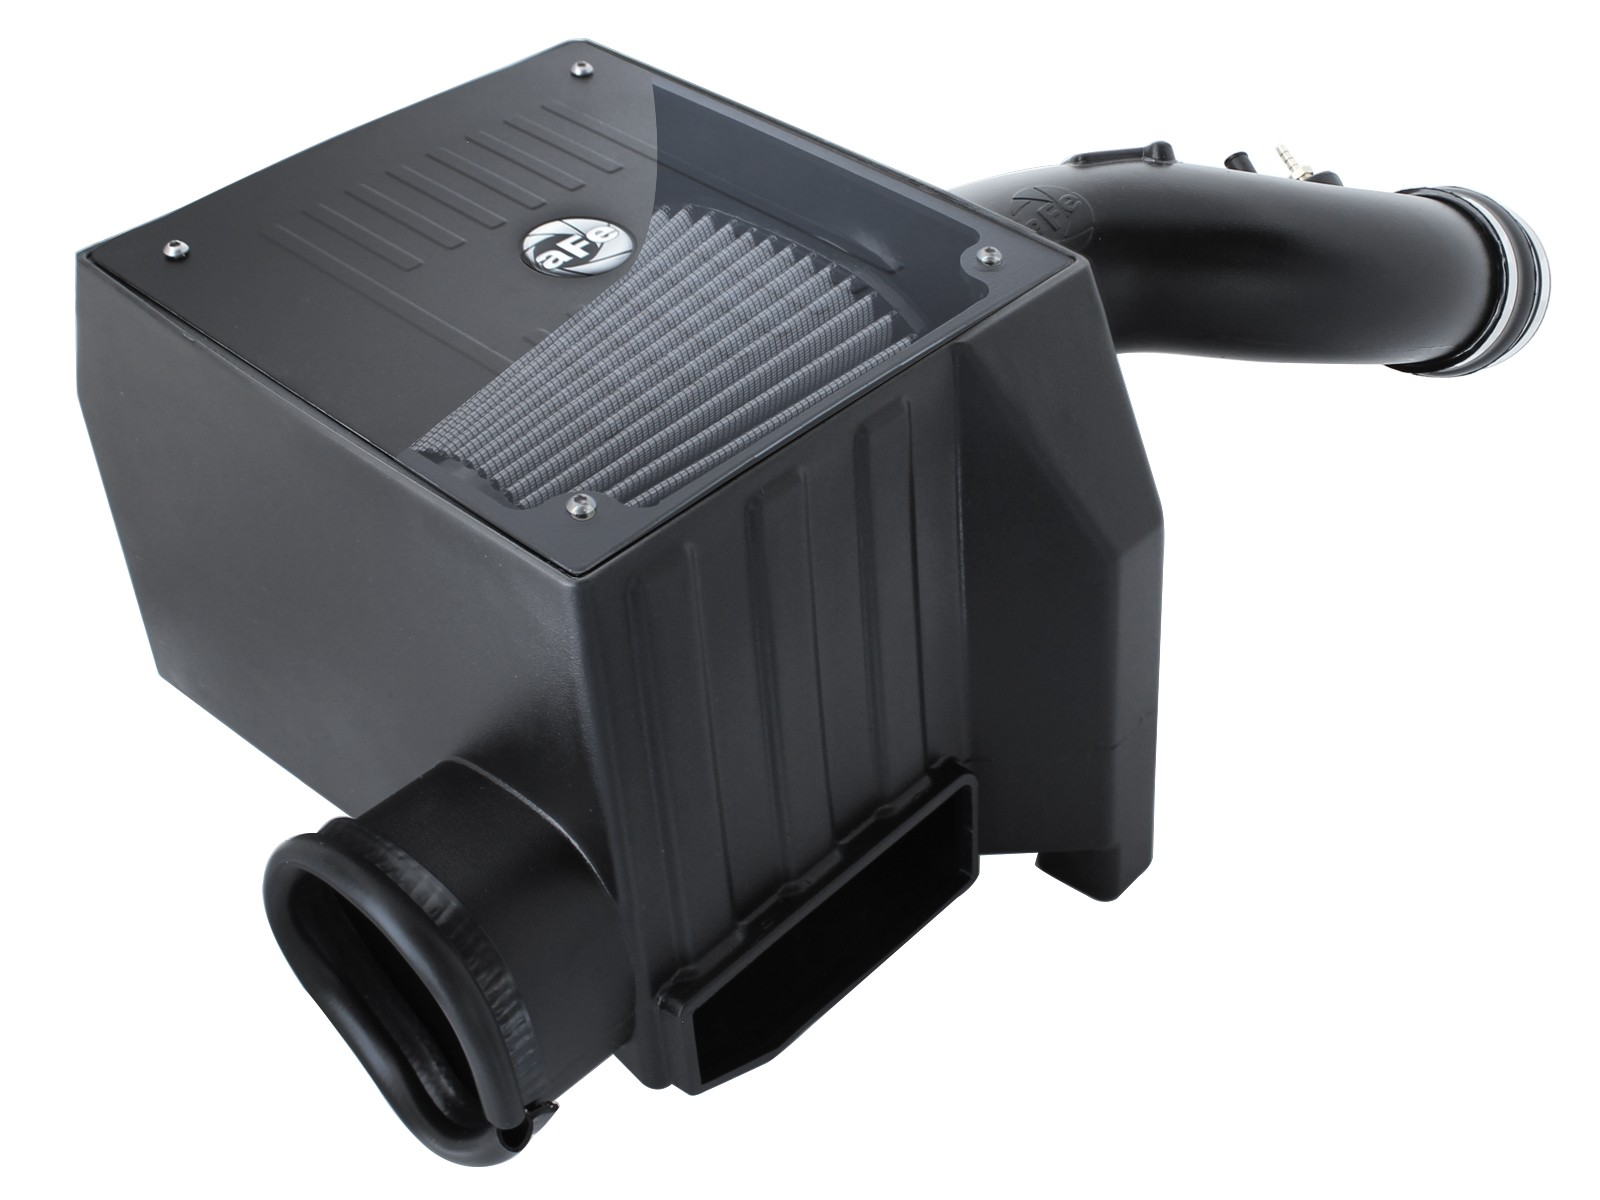 aFe POWER 51-81174 Magnum FORCE Stage-2 Si Pro DRY S Cold Air Intake System